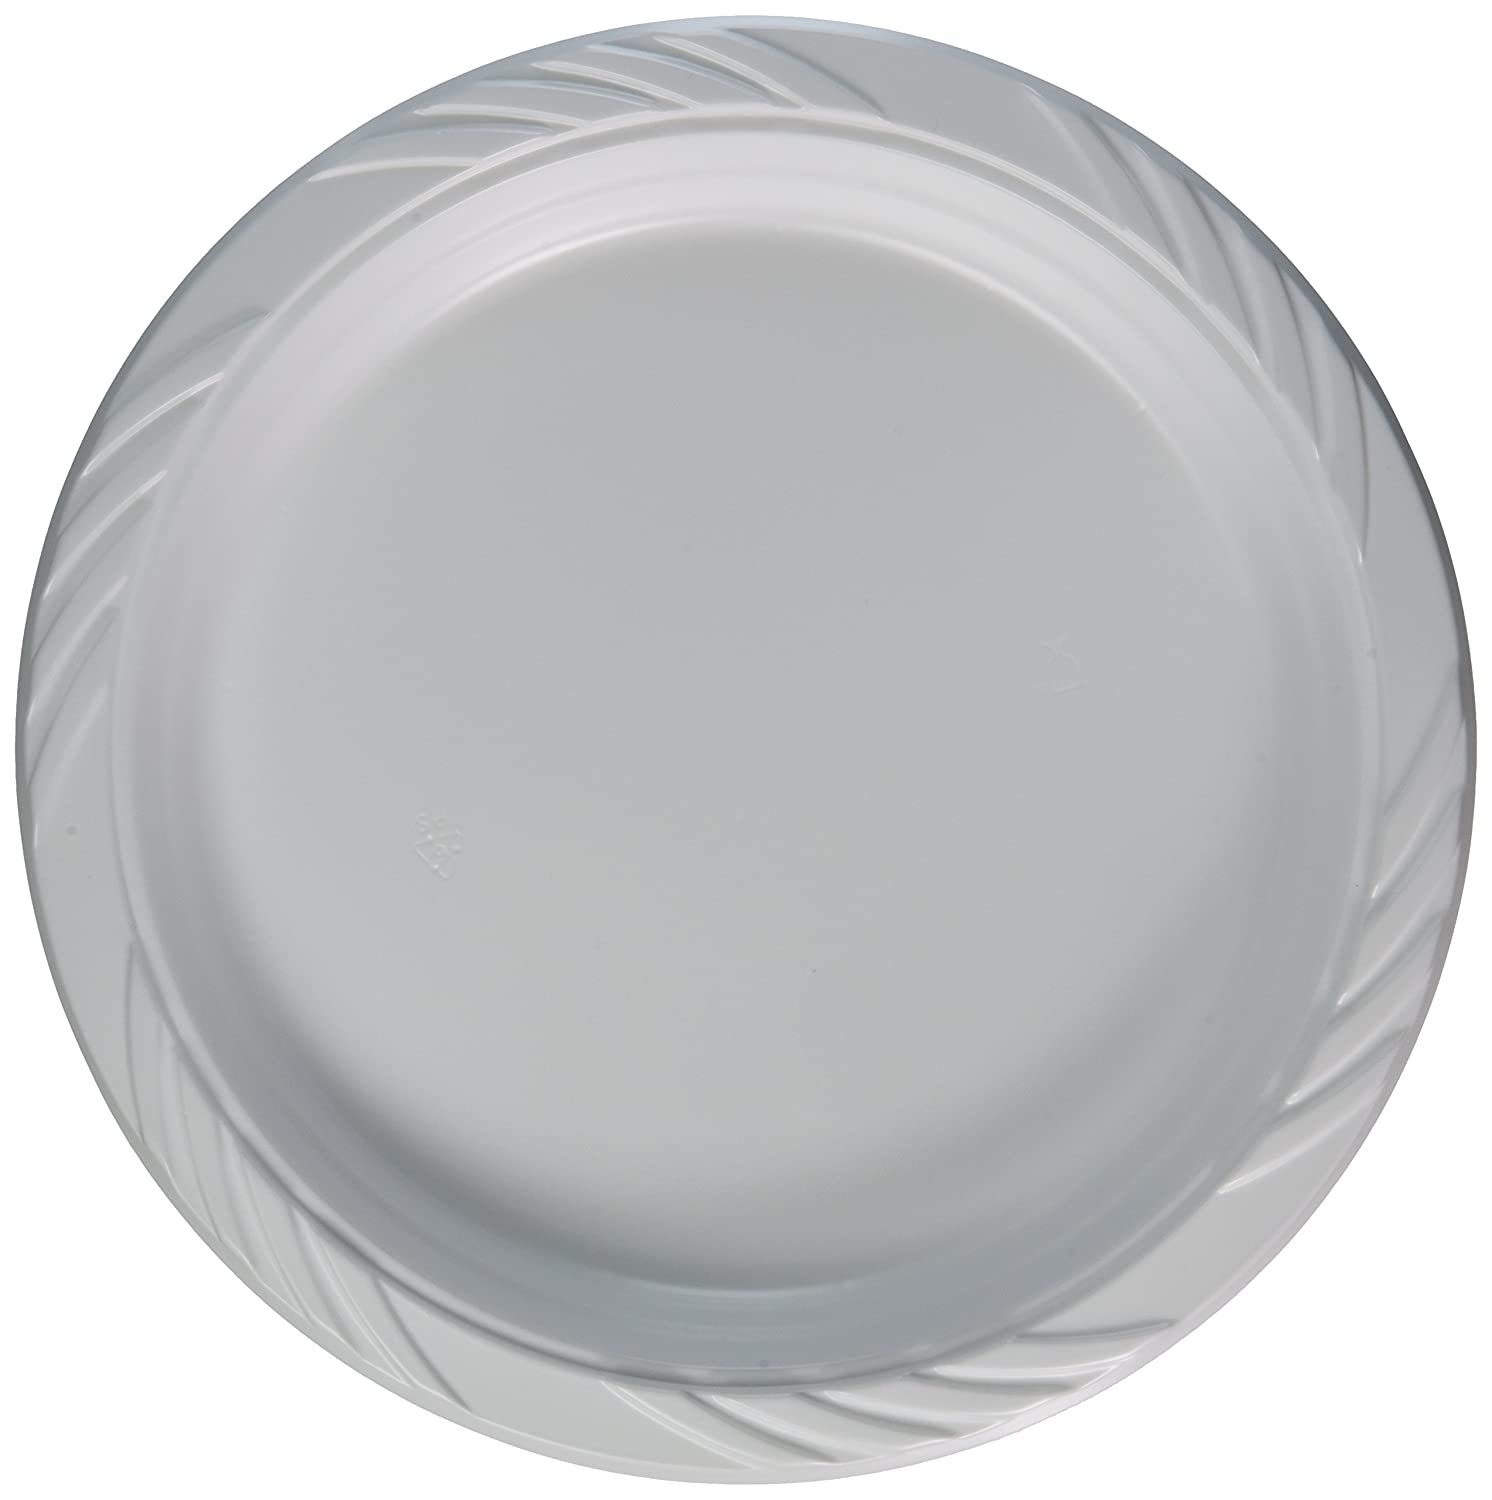 Amazon.com Blue Sky 100 Count Disposable Plastic Plates 9-Inch White Kitchen \u0026 Dining  sc 1 st  Amazon.com : disposable serving plates - pezcame.com